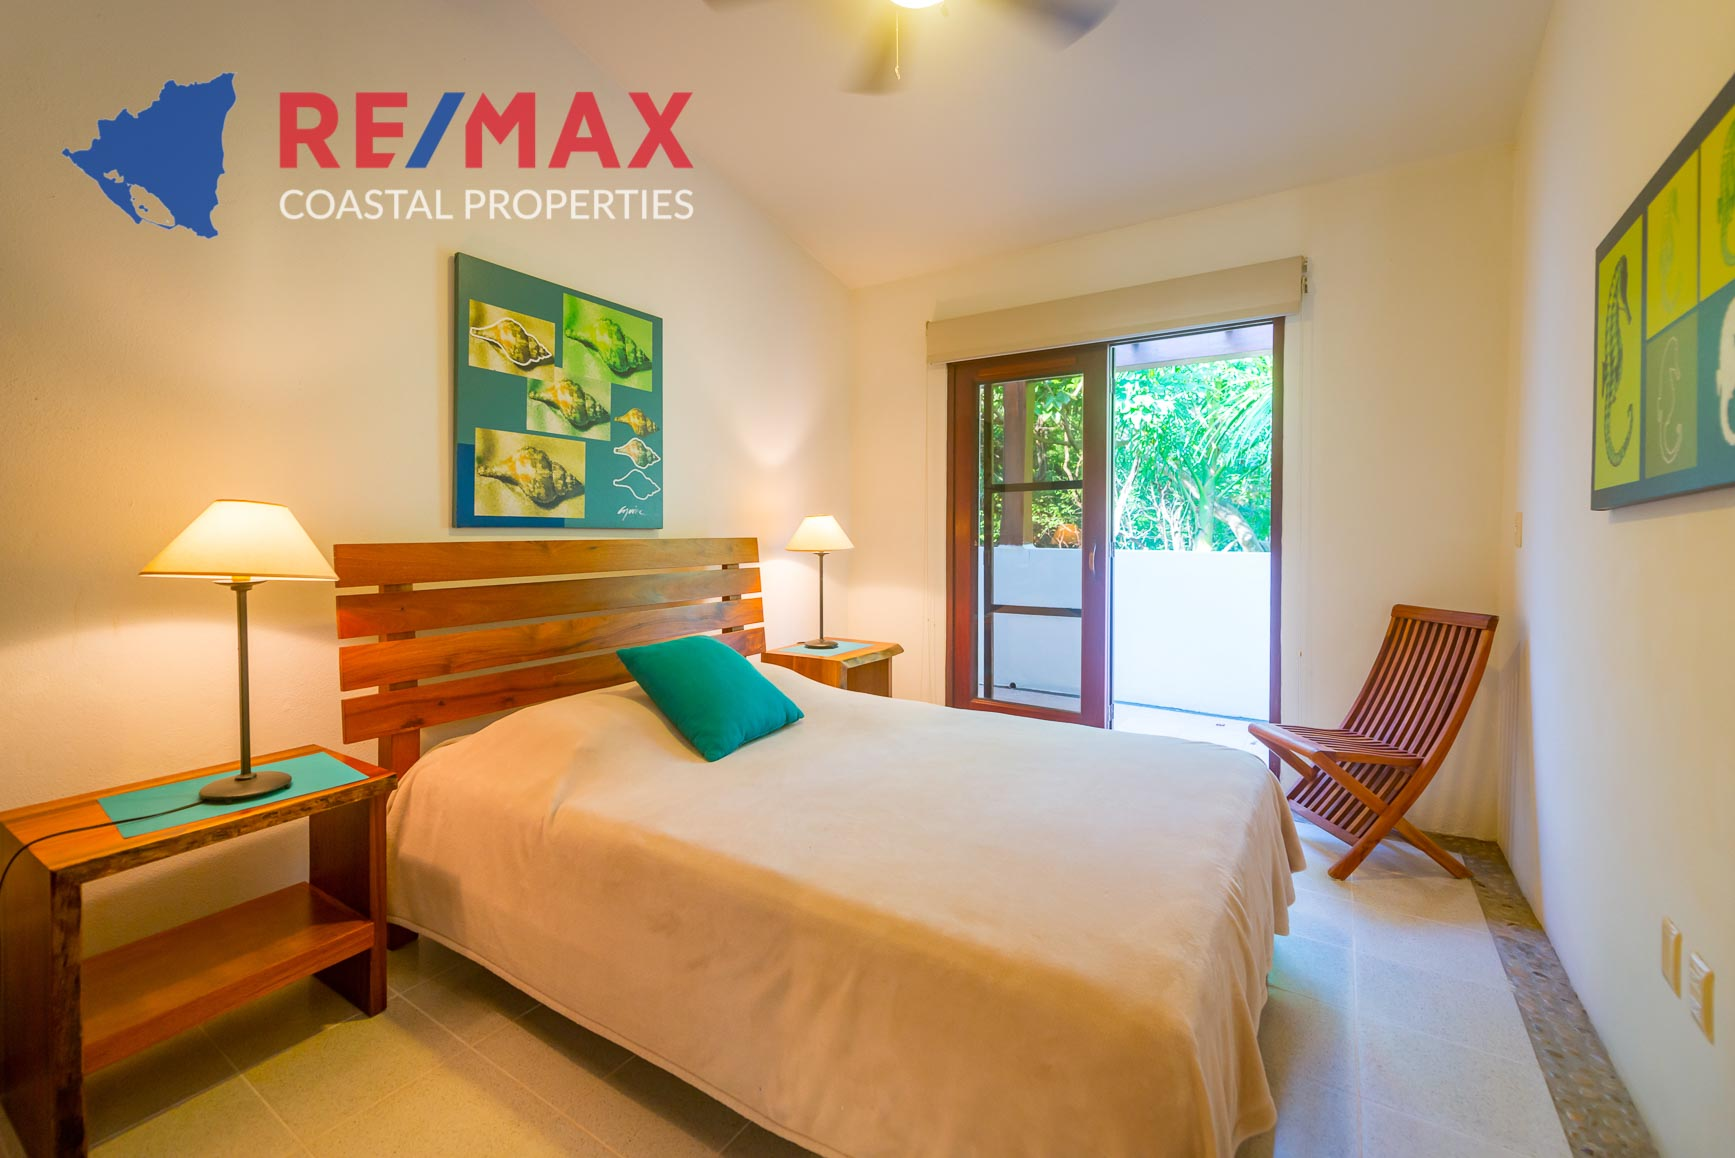 https://property-nicaragua.com/pedrodev/wp-content/uploads/2012/06/Playa-Coco-Townhome-2-REMAX-Coastal-Properties-25.jpg